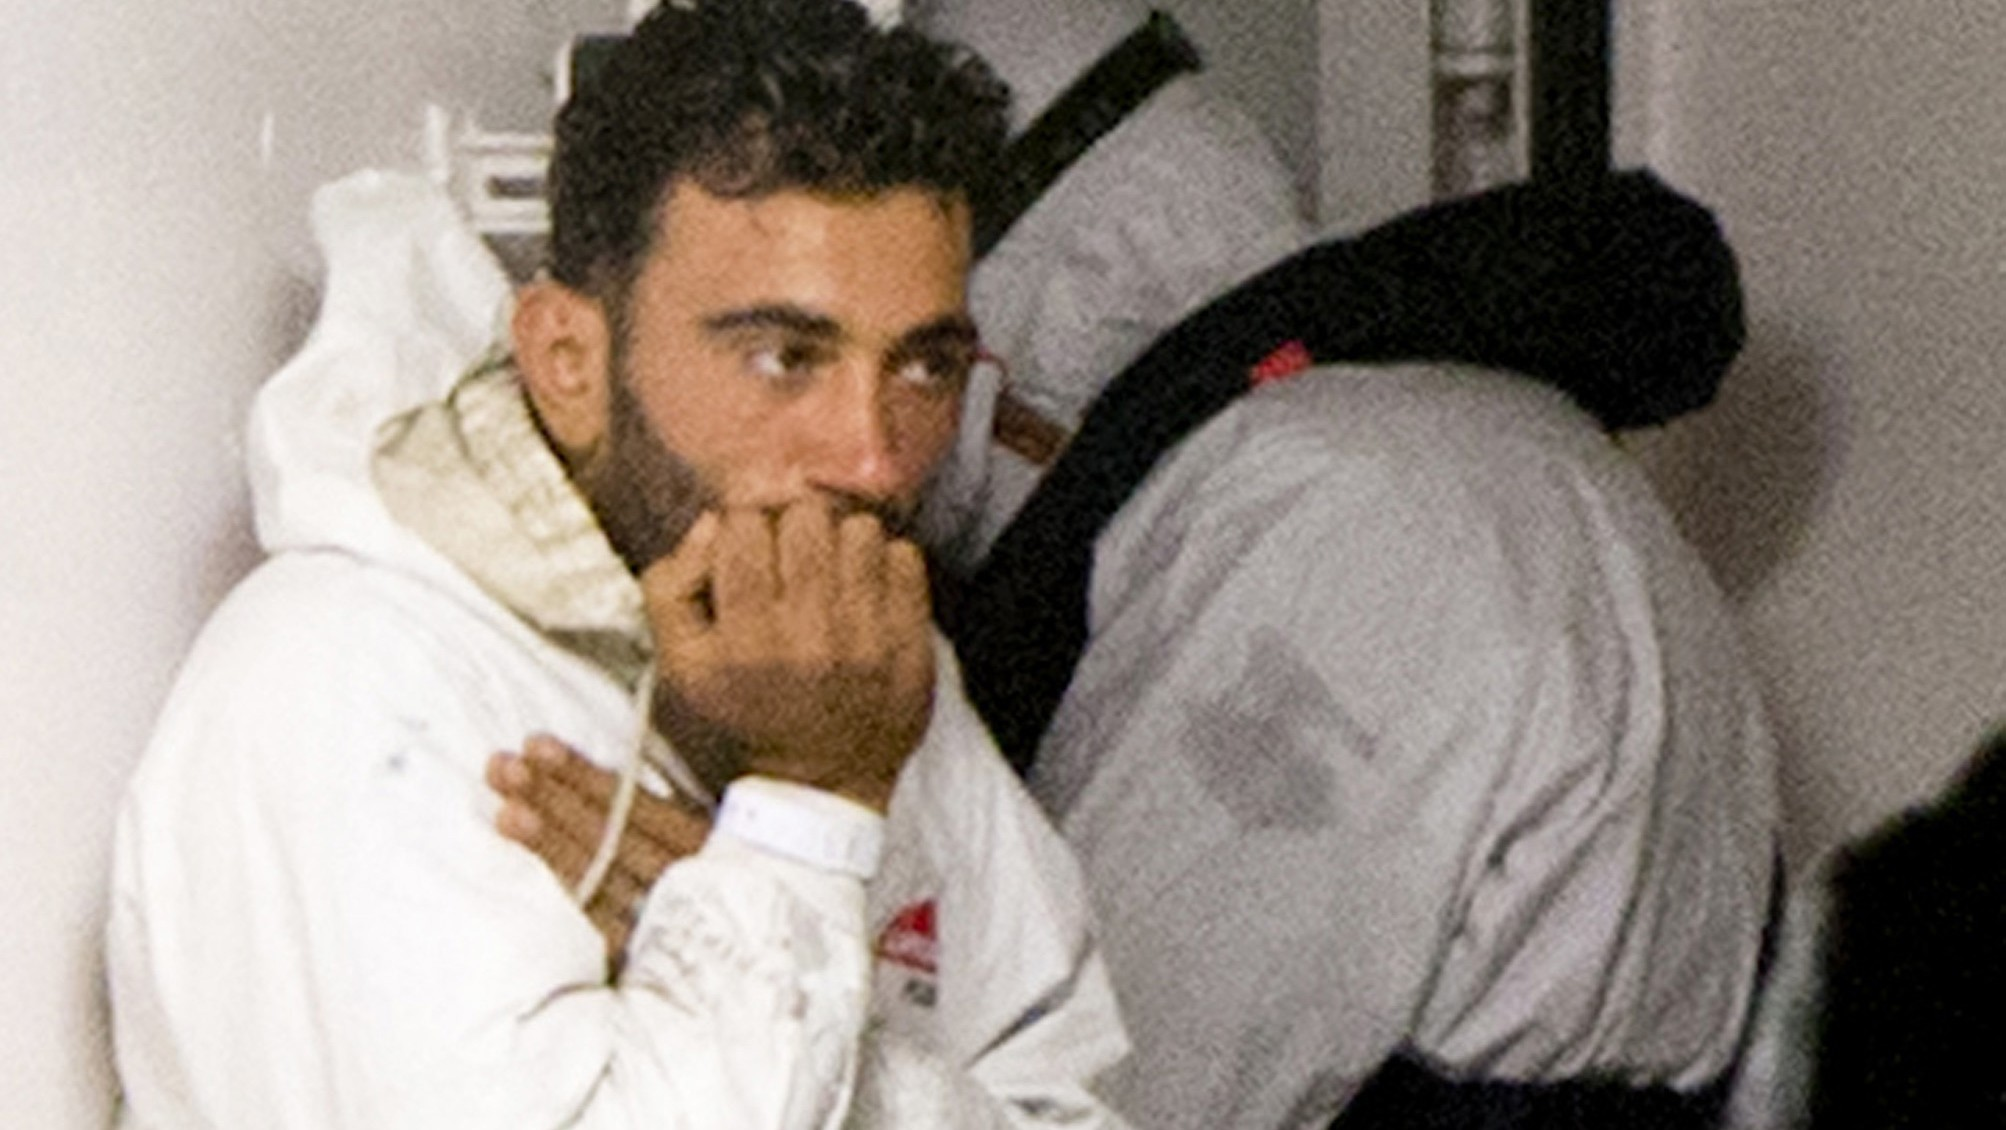 Alleged Captain of Migrant Boat Disaster Appears in Court as Critics Call EU Leaders' Pledge 'Not Enough'